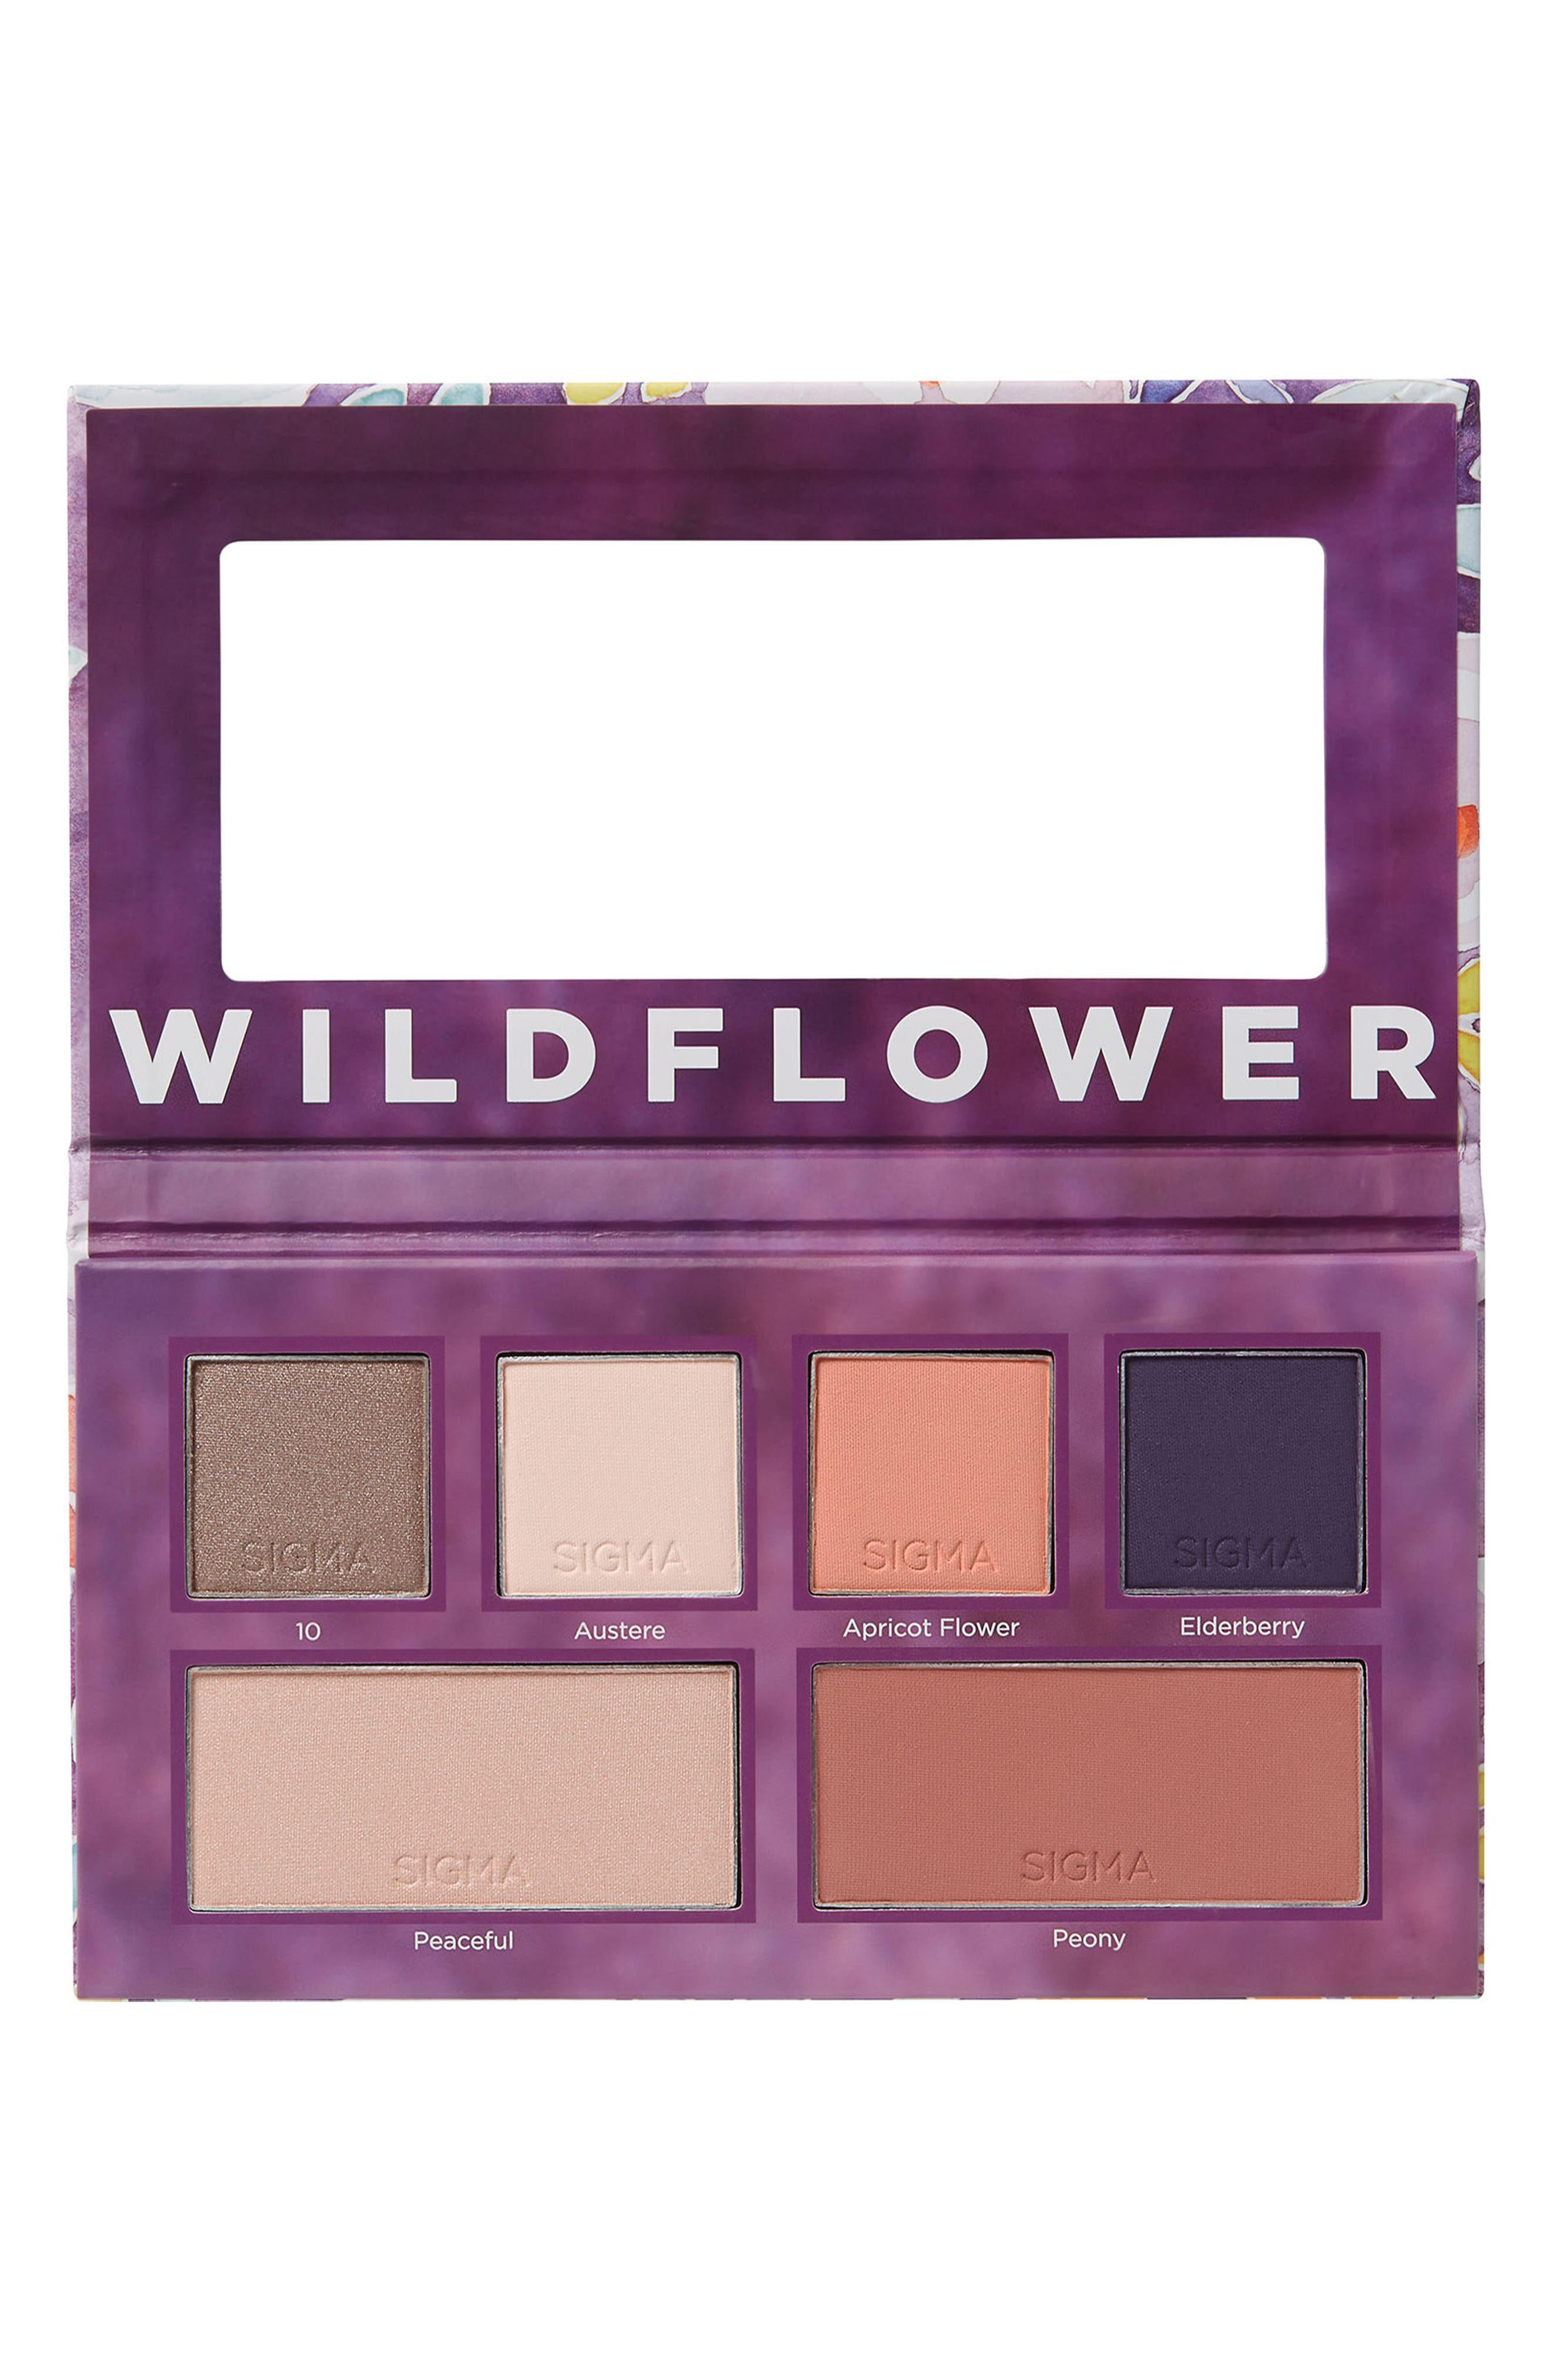 Wildflower Eye & Cheek Palette,                             Main thumbnail 1, color,                             NO COLOR